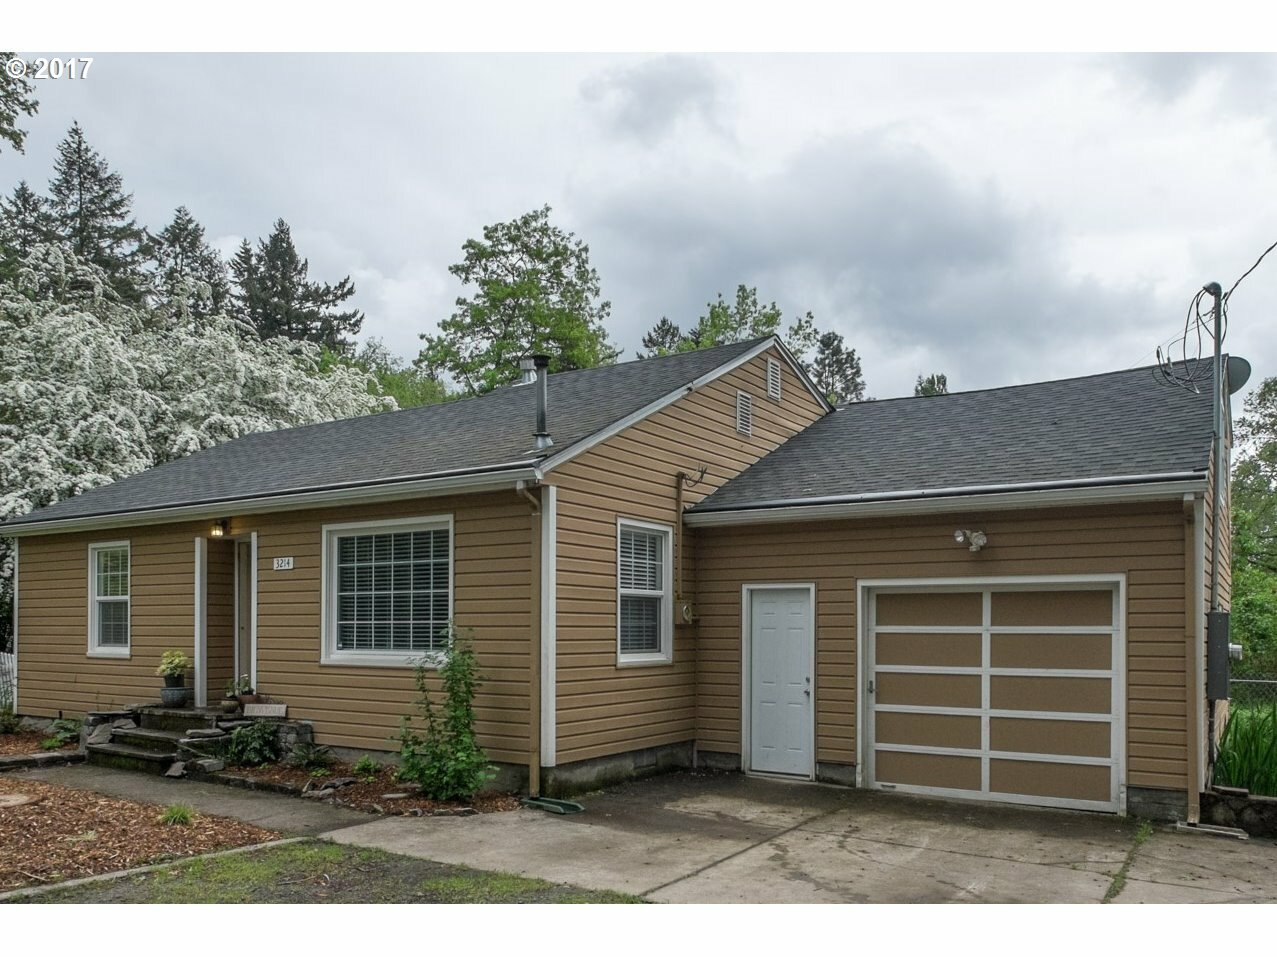 3214 Se Westview Ave, Milwaukie, OR - USA (photo 2)